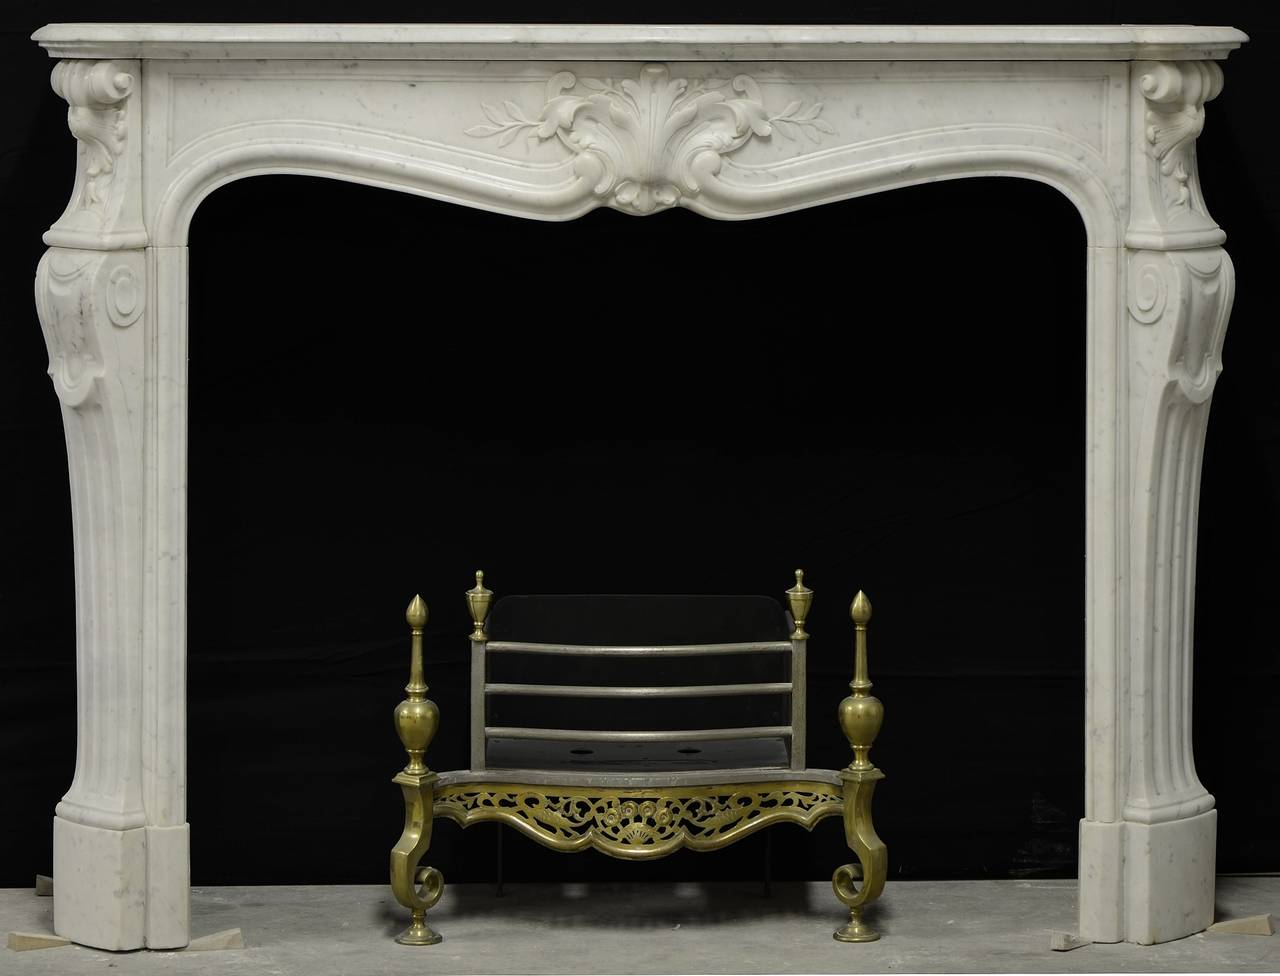 For Sale on 1stdibs - Antique fireplace